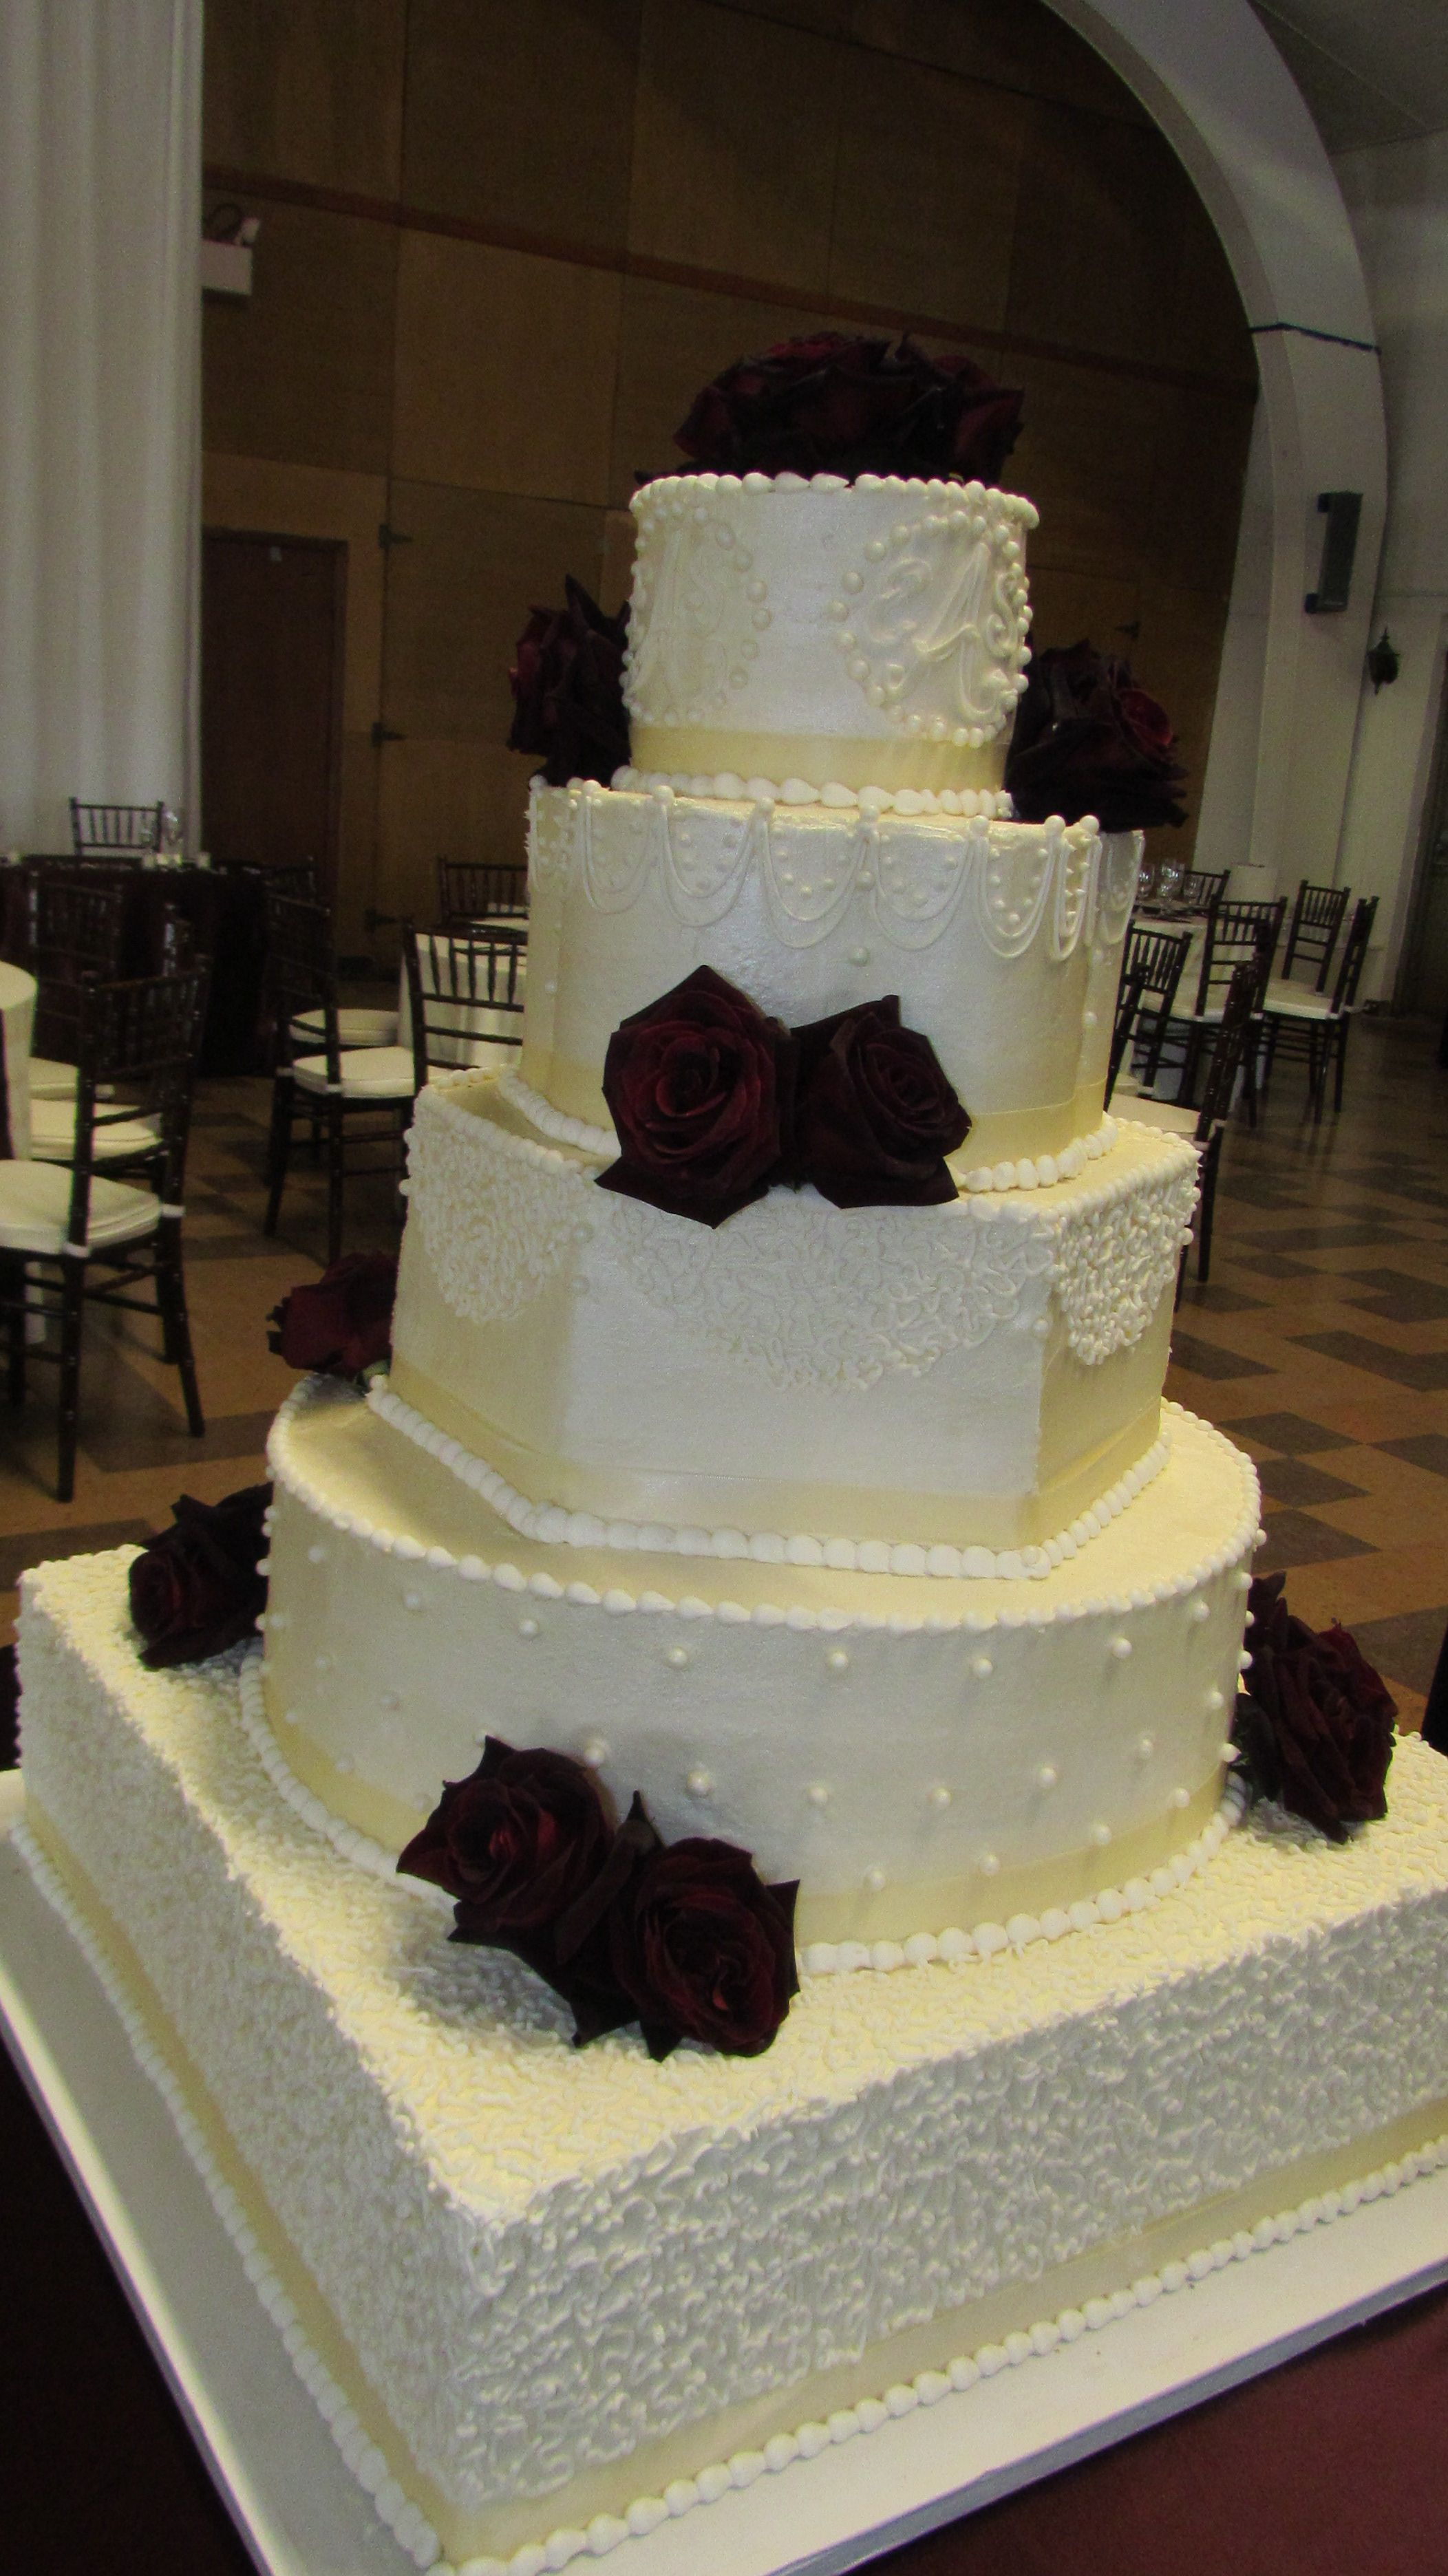 Cakes By Lori At Hawthorn Suites Champaign Il Wedding Cakes